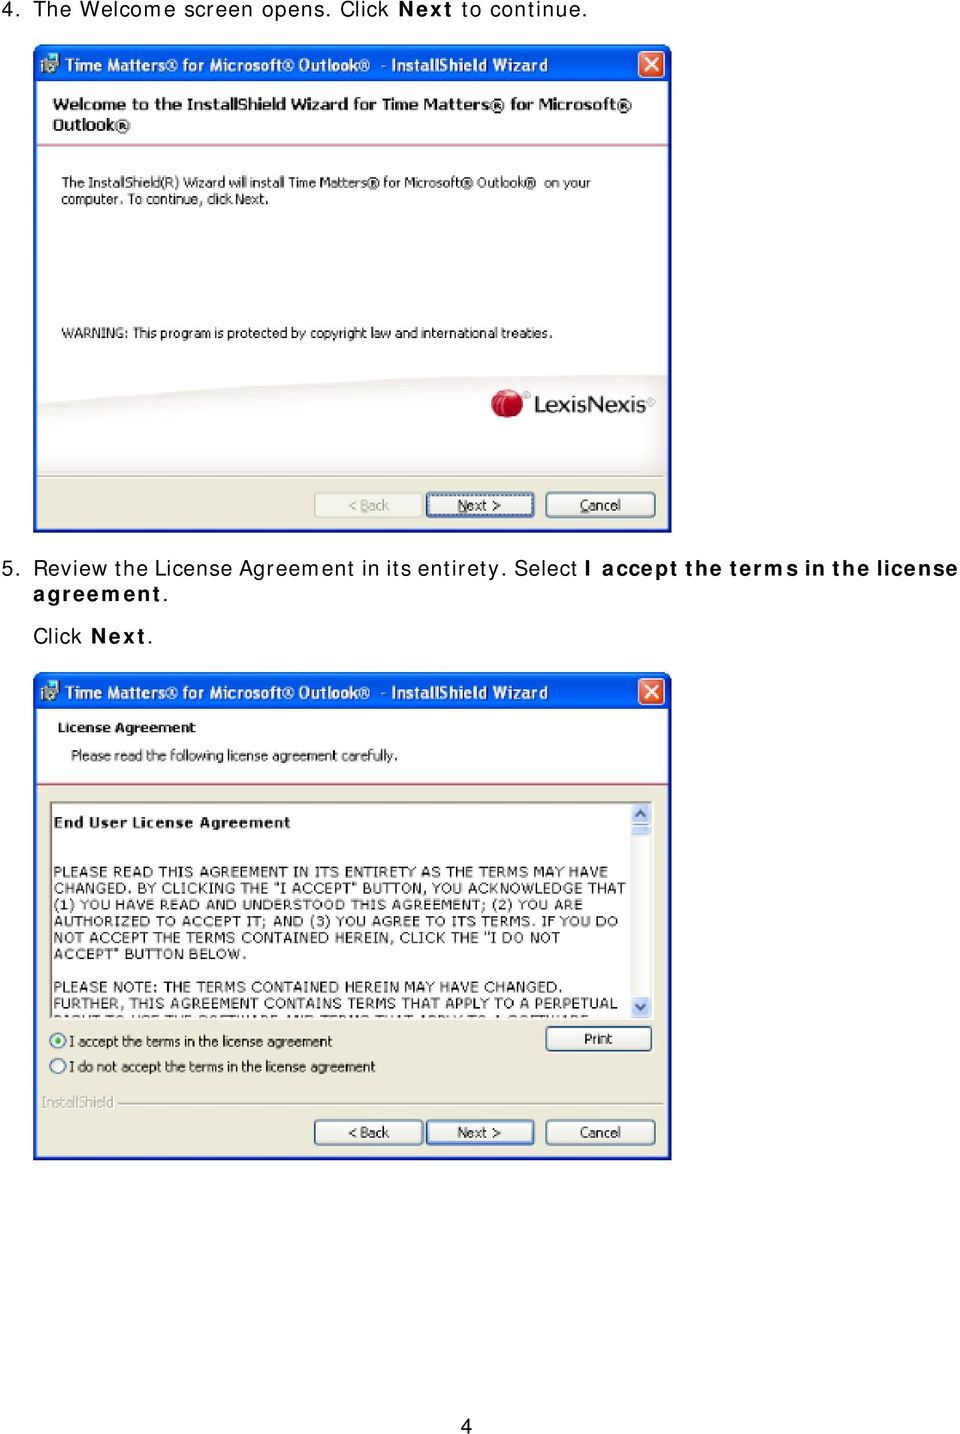 Review the License Agreement in its